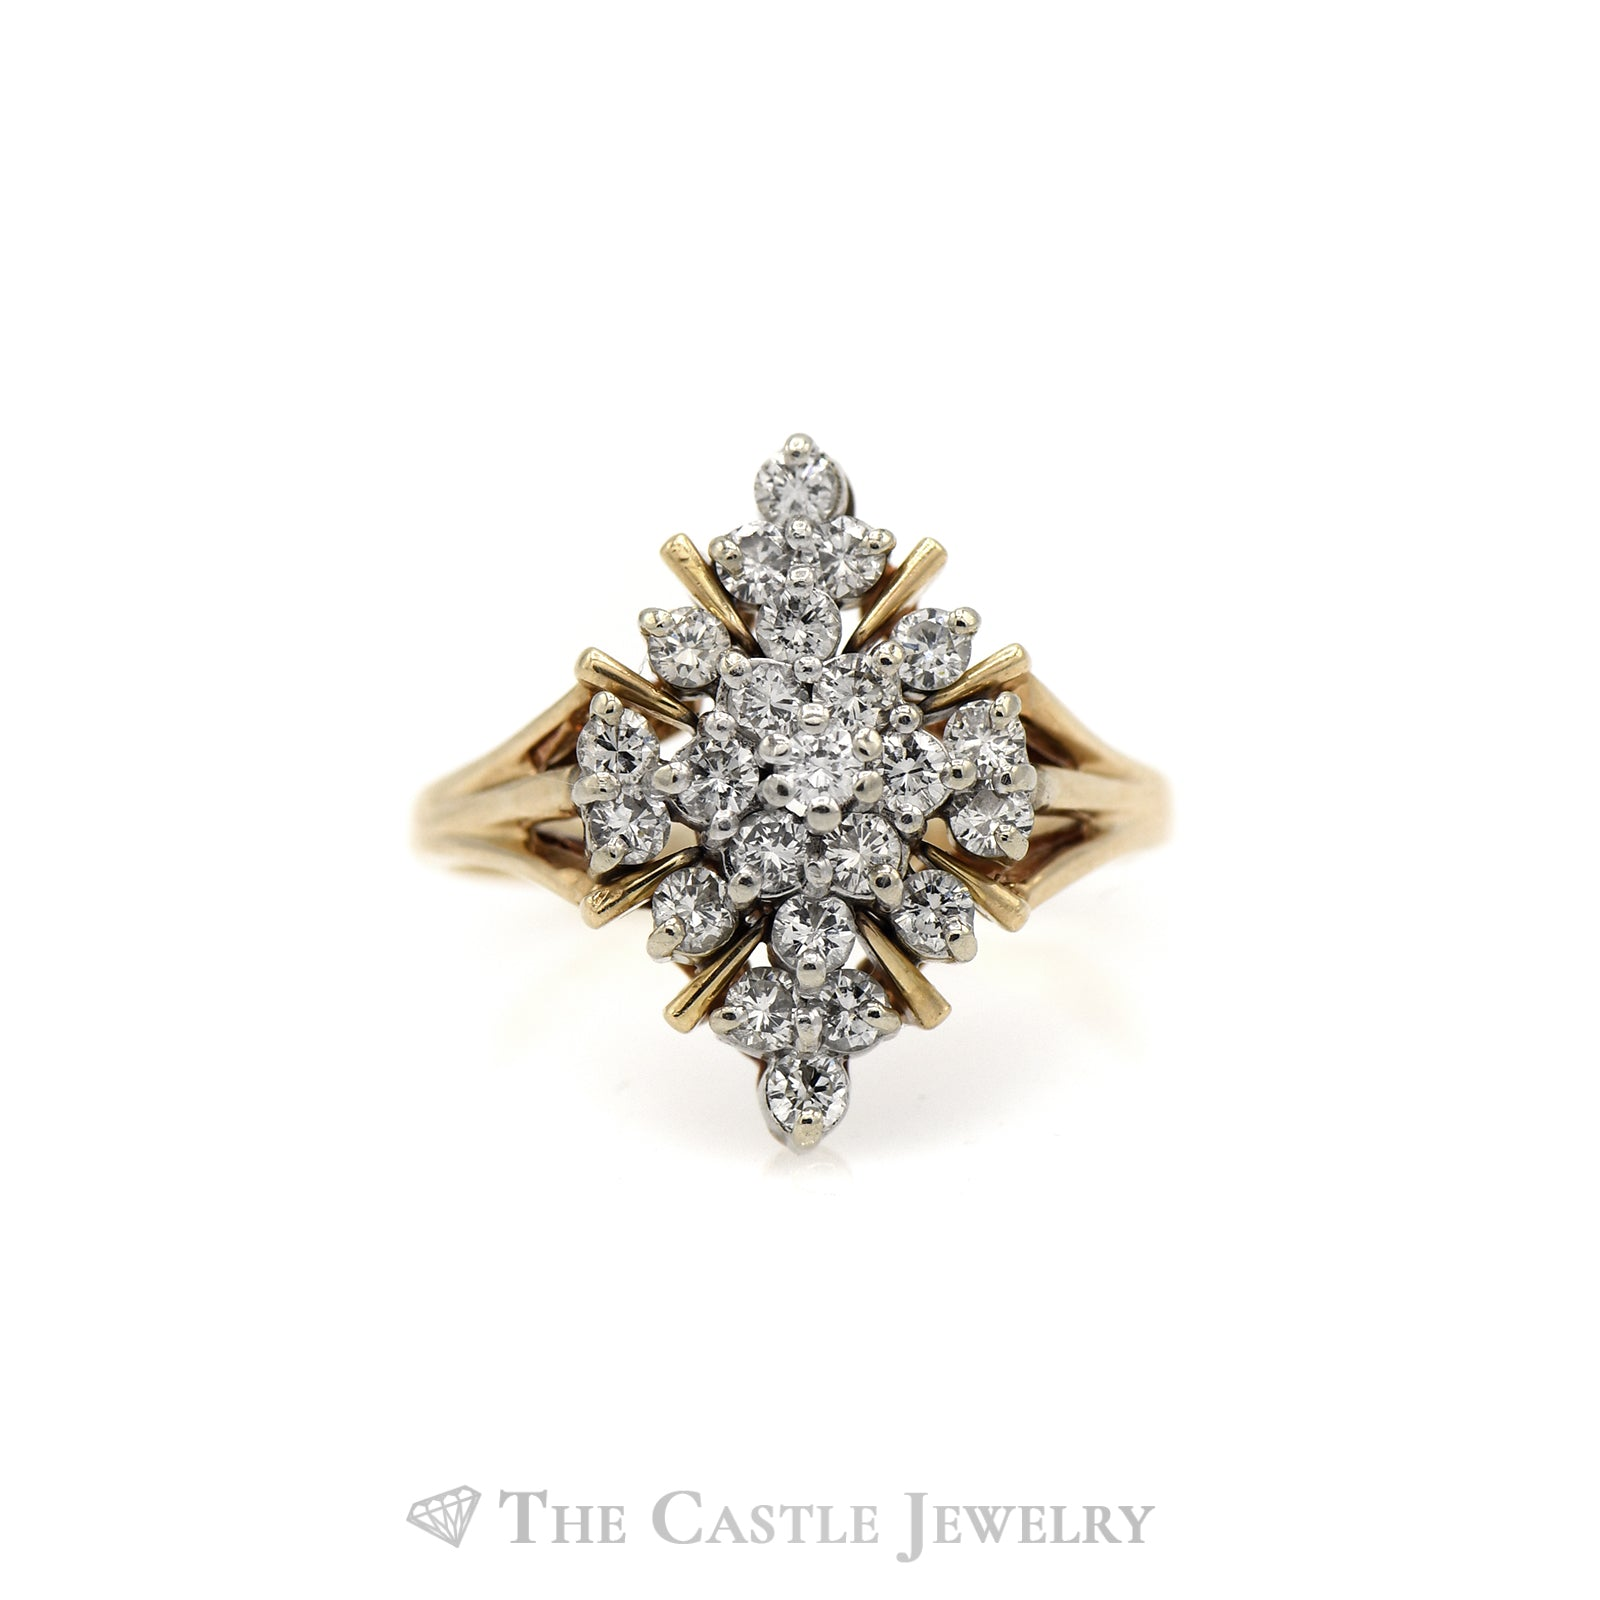 Snowflake Shape Diamond Cluster Ring in 14KT Yellow Gold